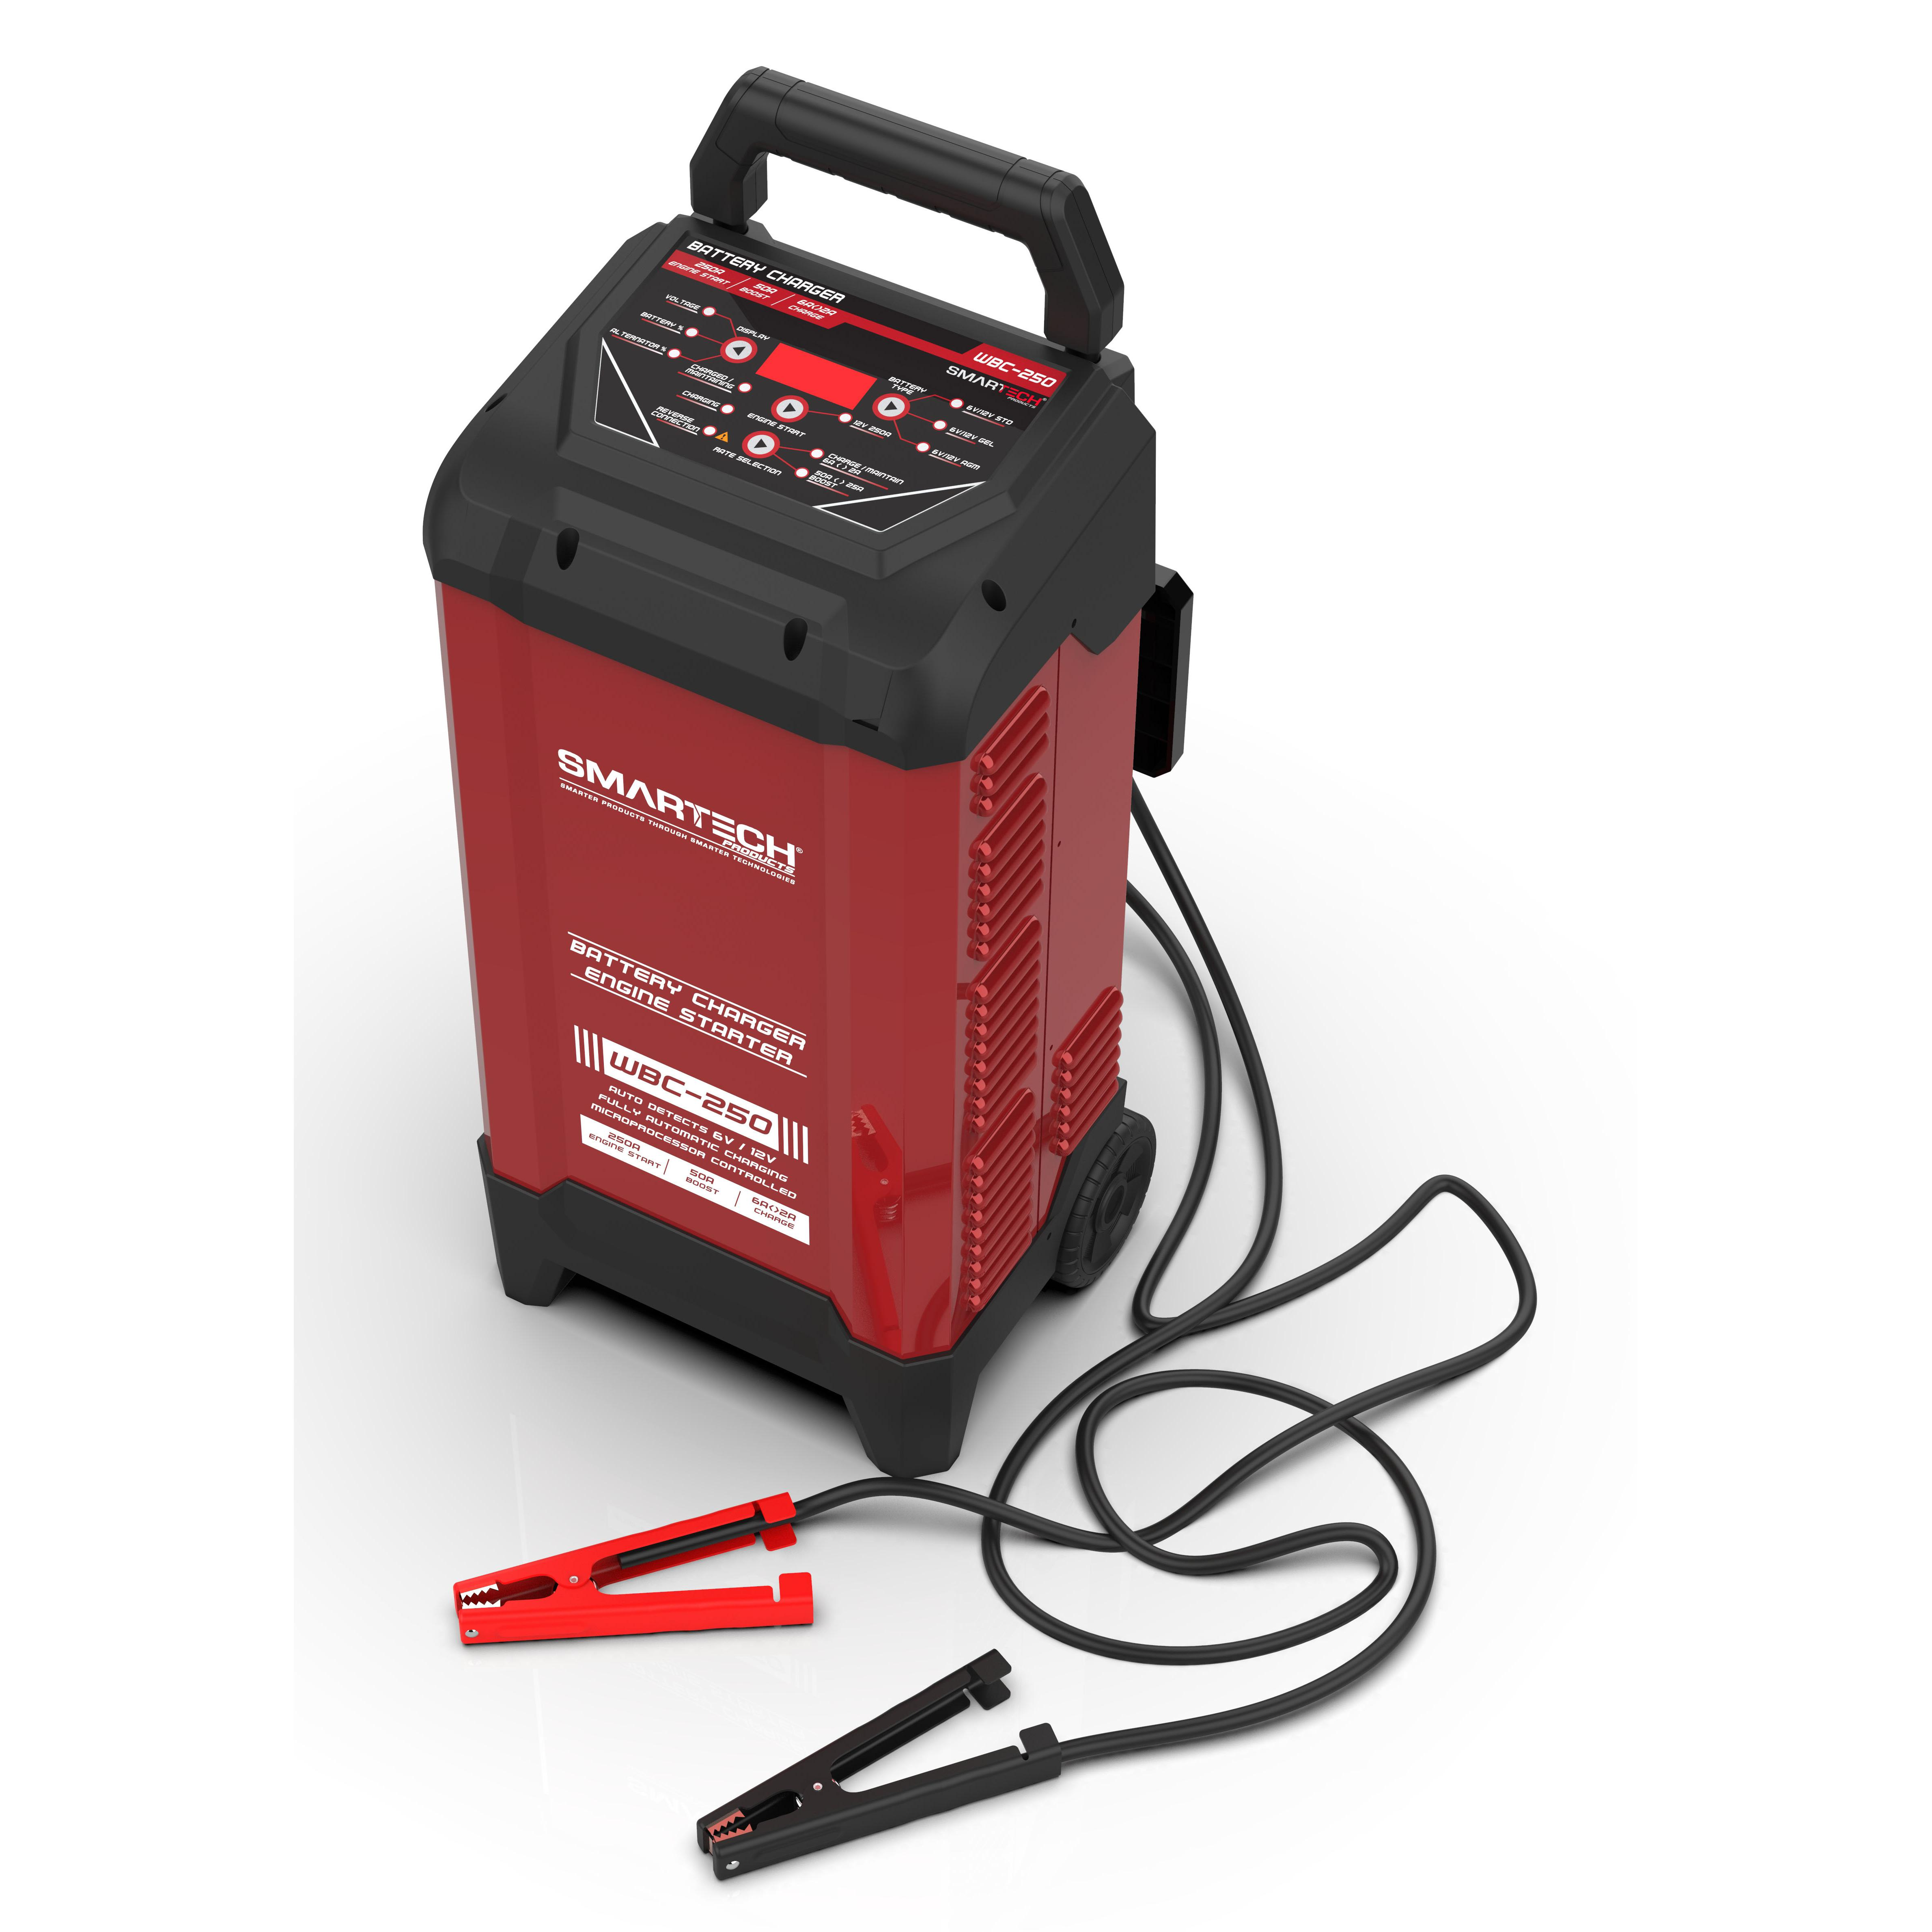 Smartech Wbc 250 6v 12v Wheel Automotive Battery Charger Maintainer 2a Lead Acid Car With Short Circuit Protection Charger250 2b Charger4b Charger6b